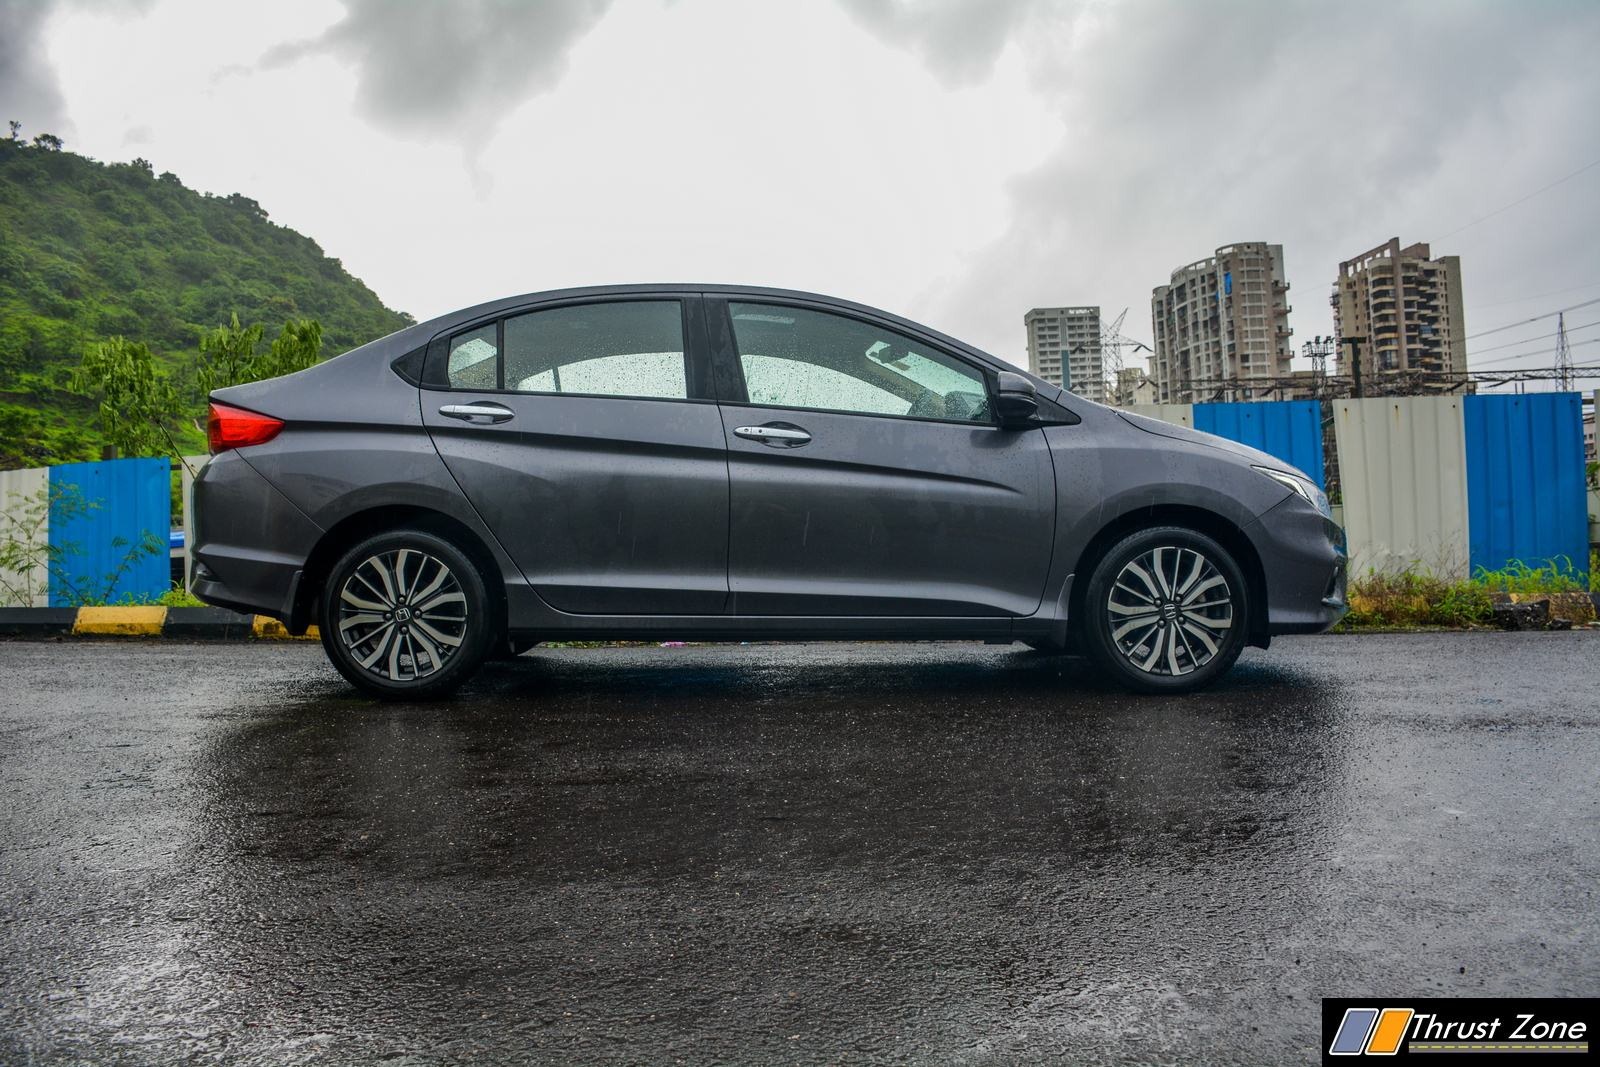 2019-Honda-City-Facelift-petrol-diesel-review-8